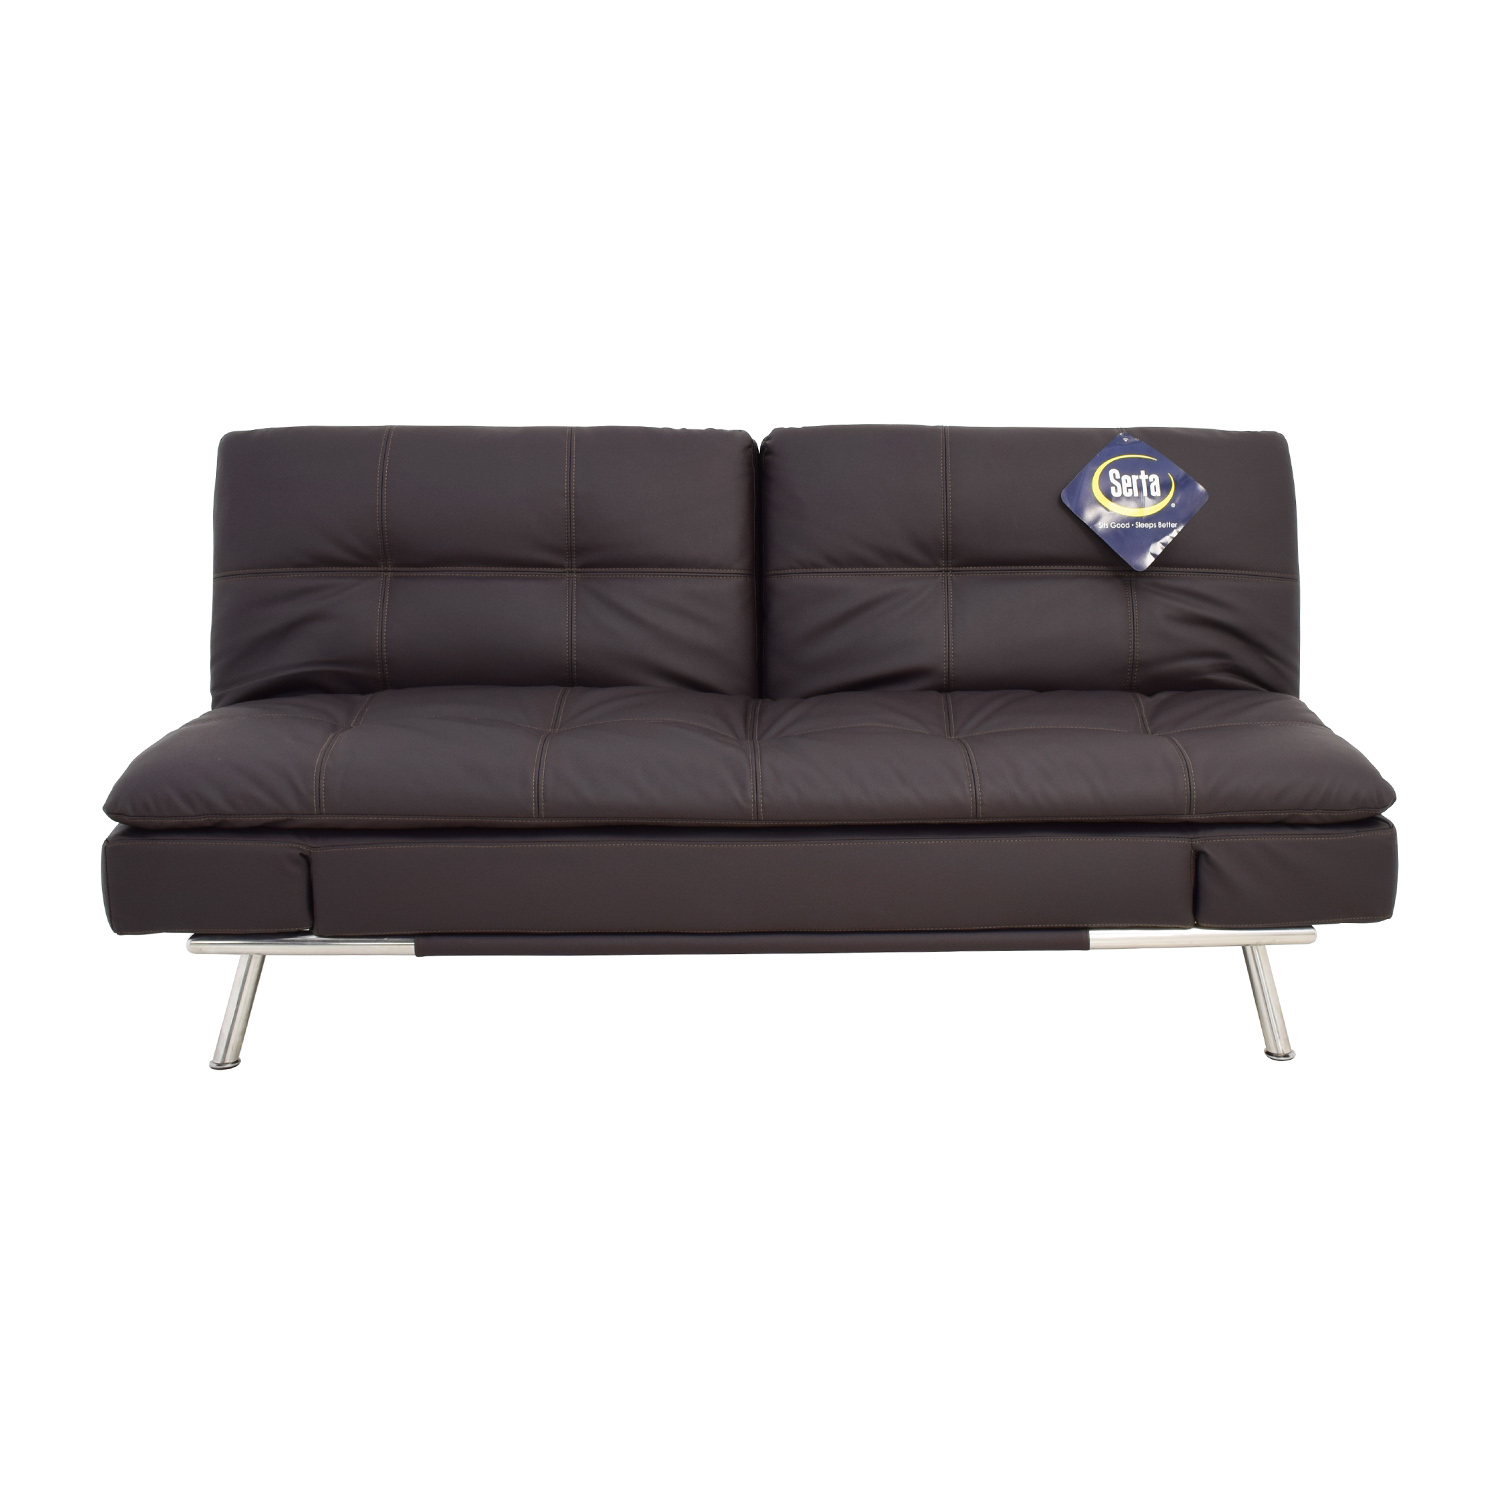 Lifestyle Solutions Serta Lifestyle Solutions Serta Matrix Leather Sleeper Sofa Classic Sofas